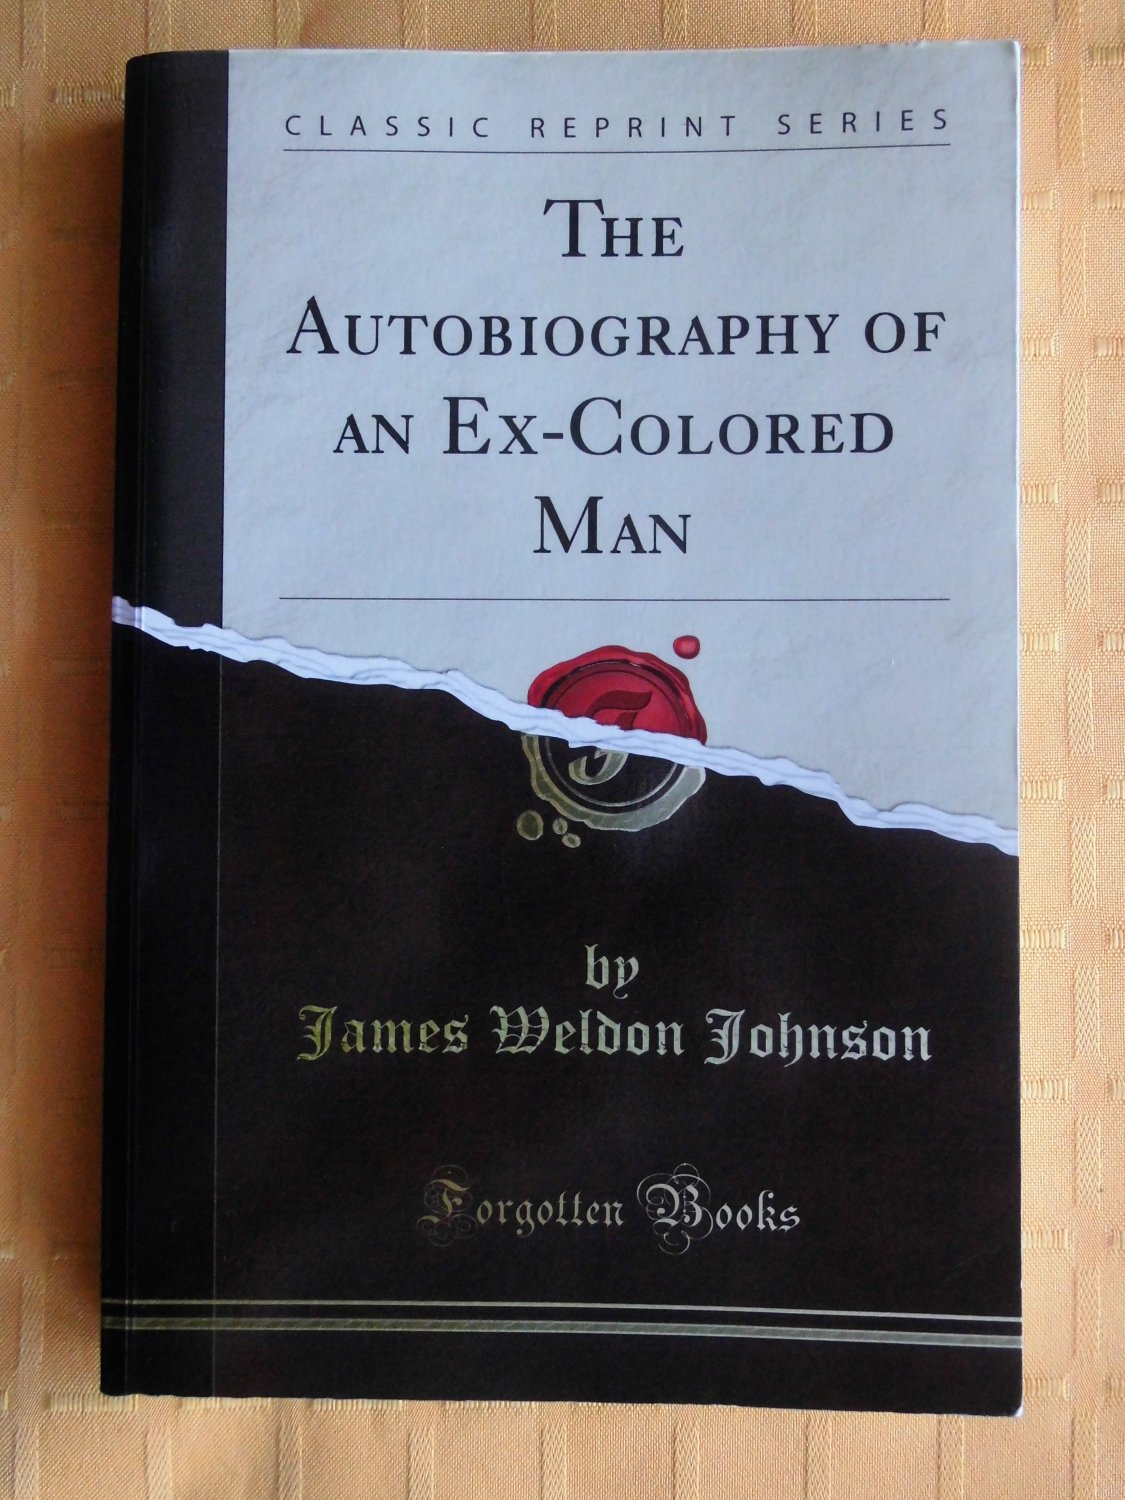 biography of an ex colored man About this book catalog record details the autobiography of an ex-colored  man johnson, james weldon, 1871-1938 view full catalog.